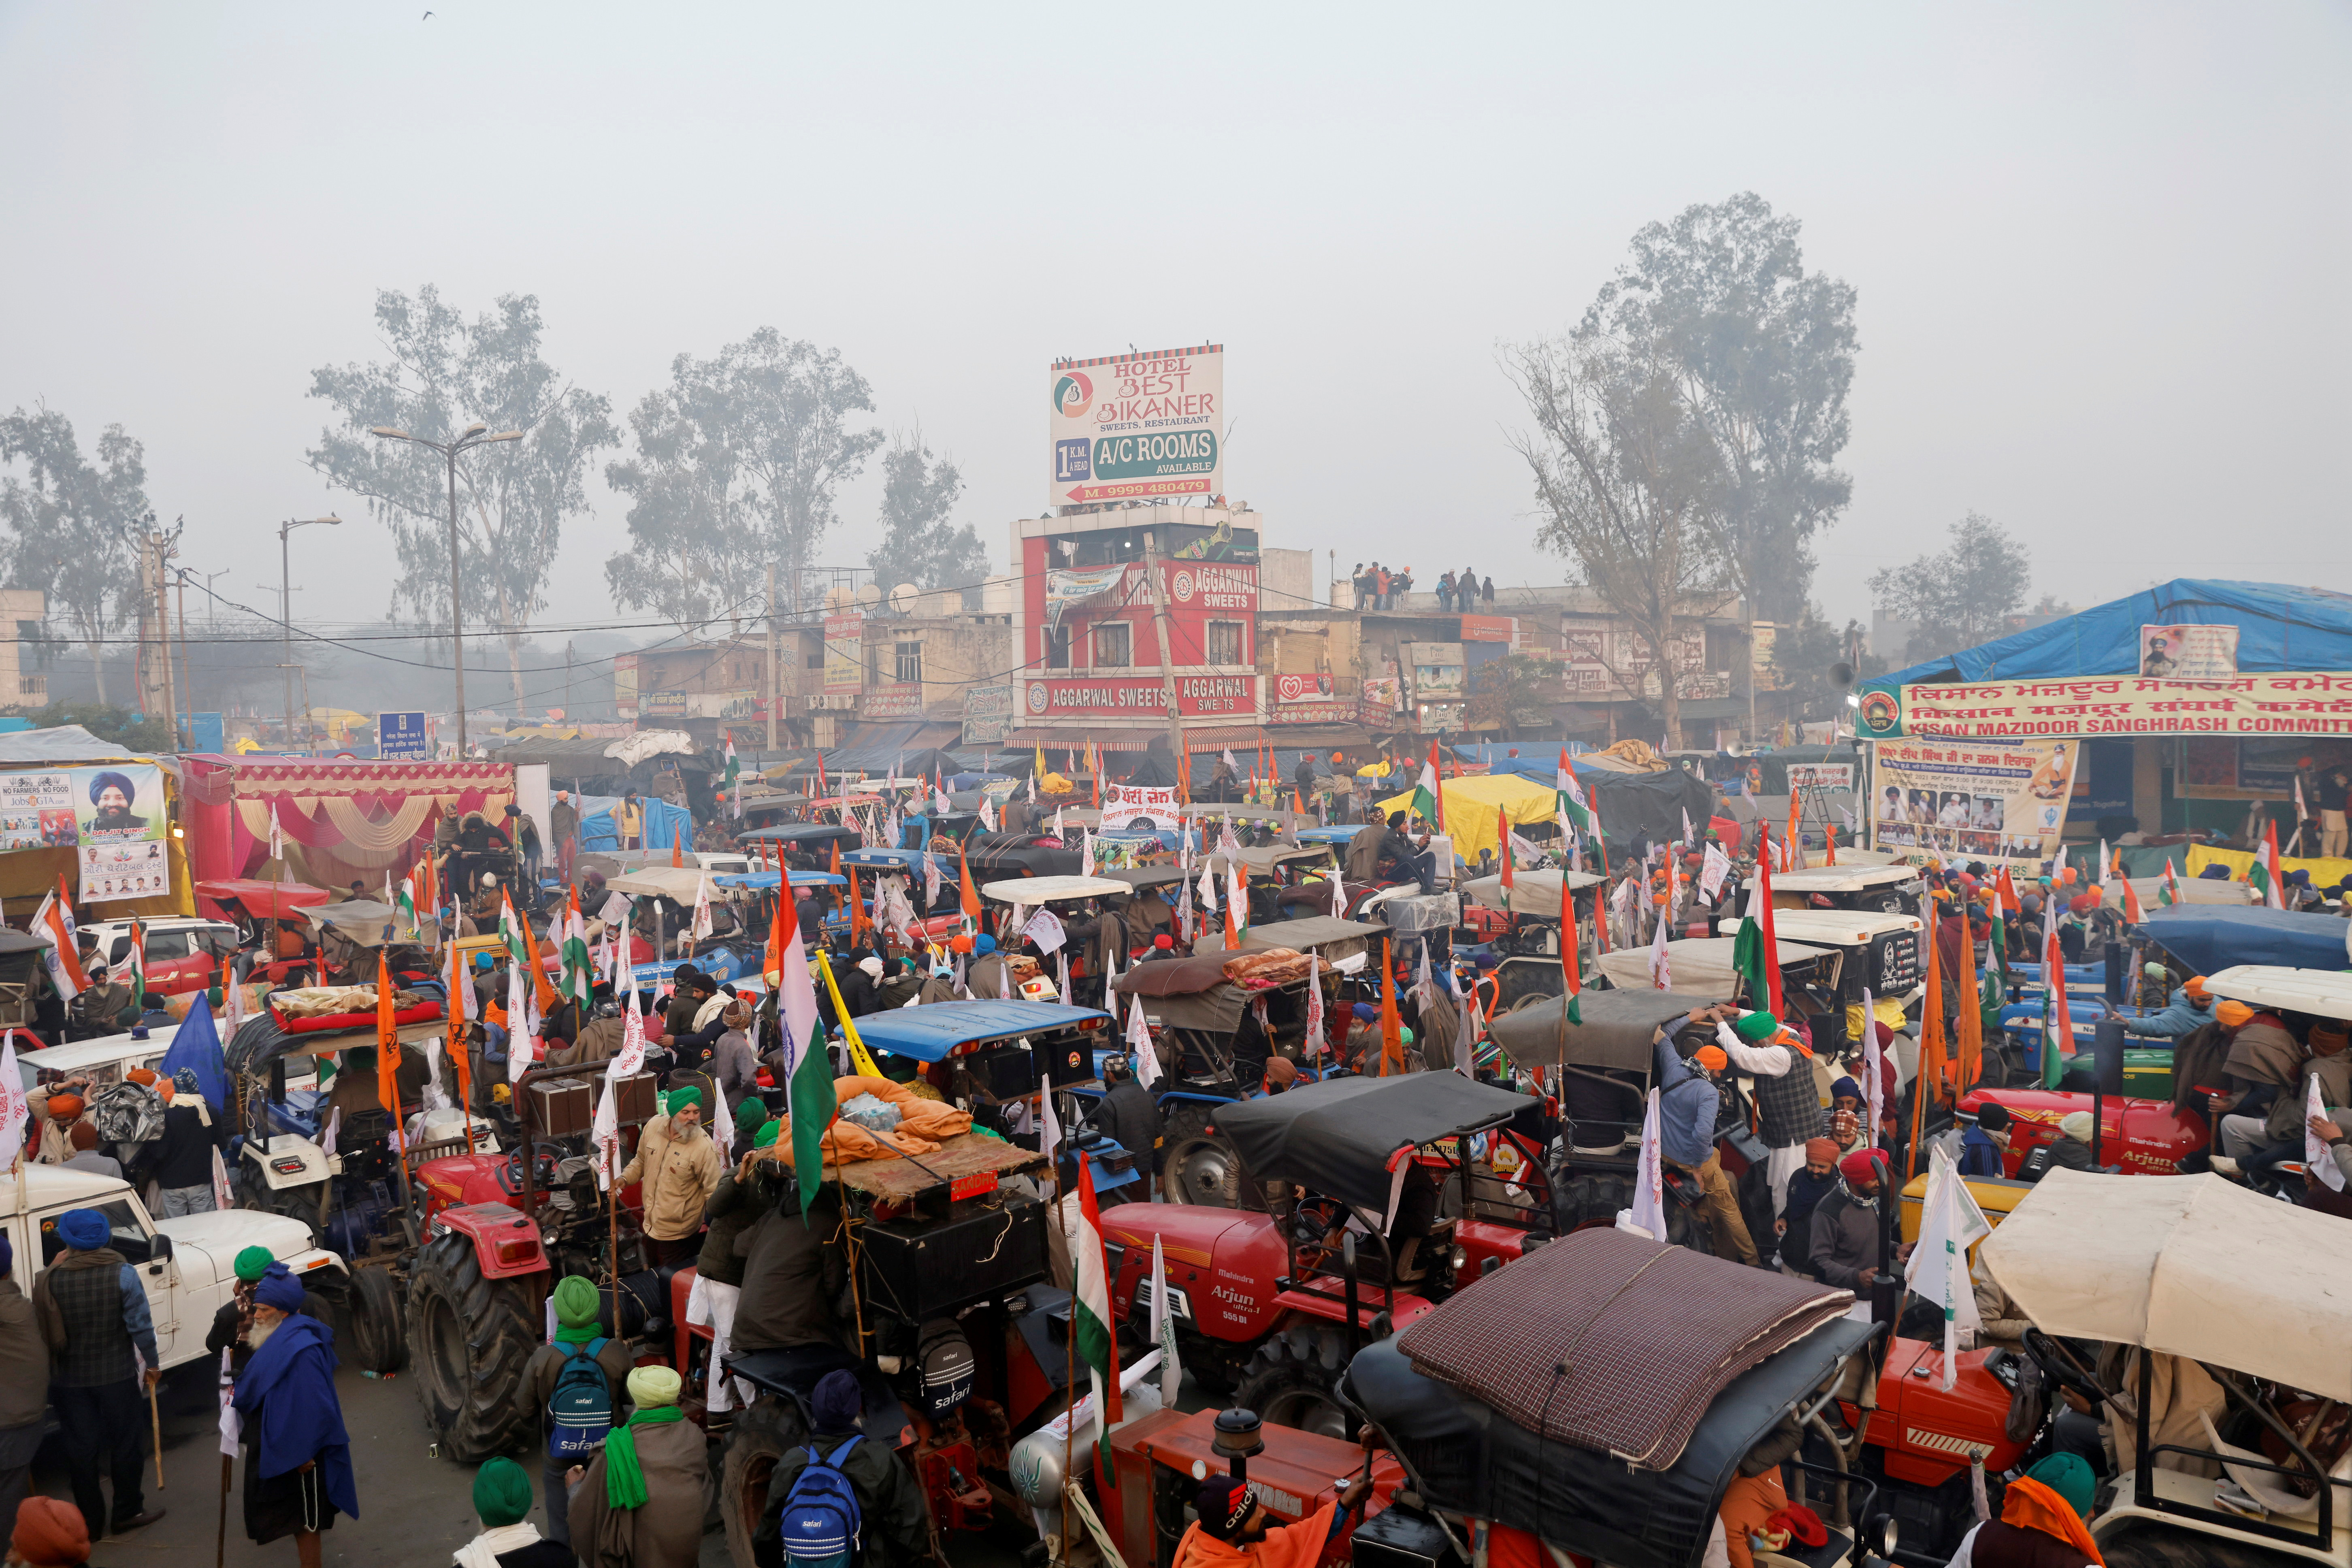 A view shows tractors before the start of a tractor rally to protest against farm laws on the occasion of India's Republic Day at Singhu border near Delhi, India, January 26, 2021. REUTERS/Danish Siddiqui